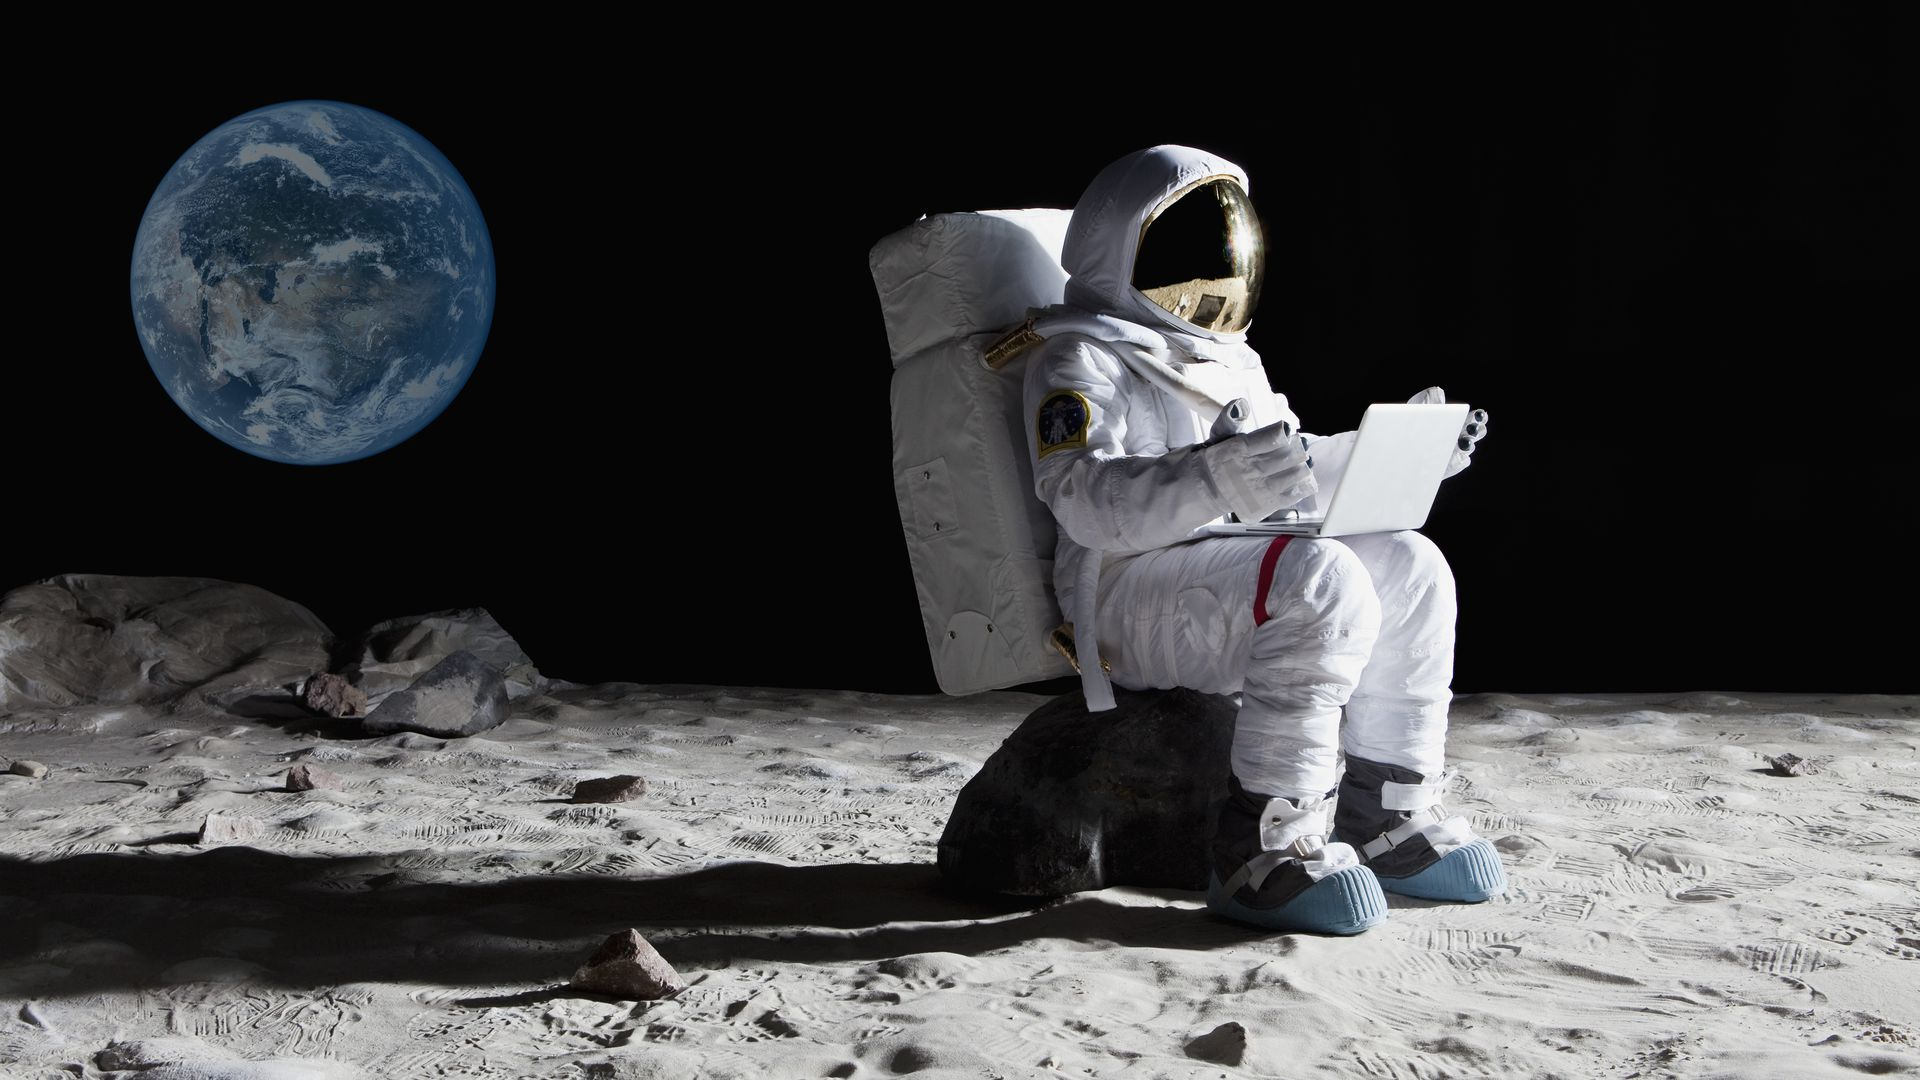 Man uses laptop on the moon.